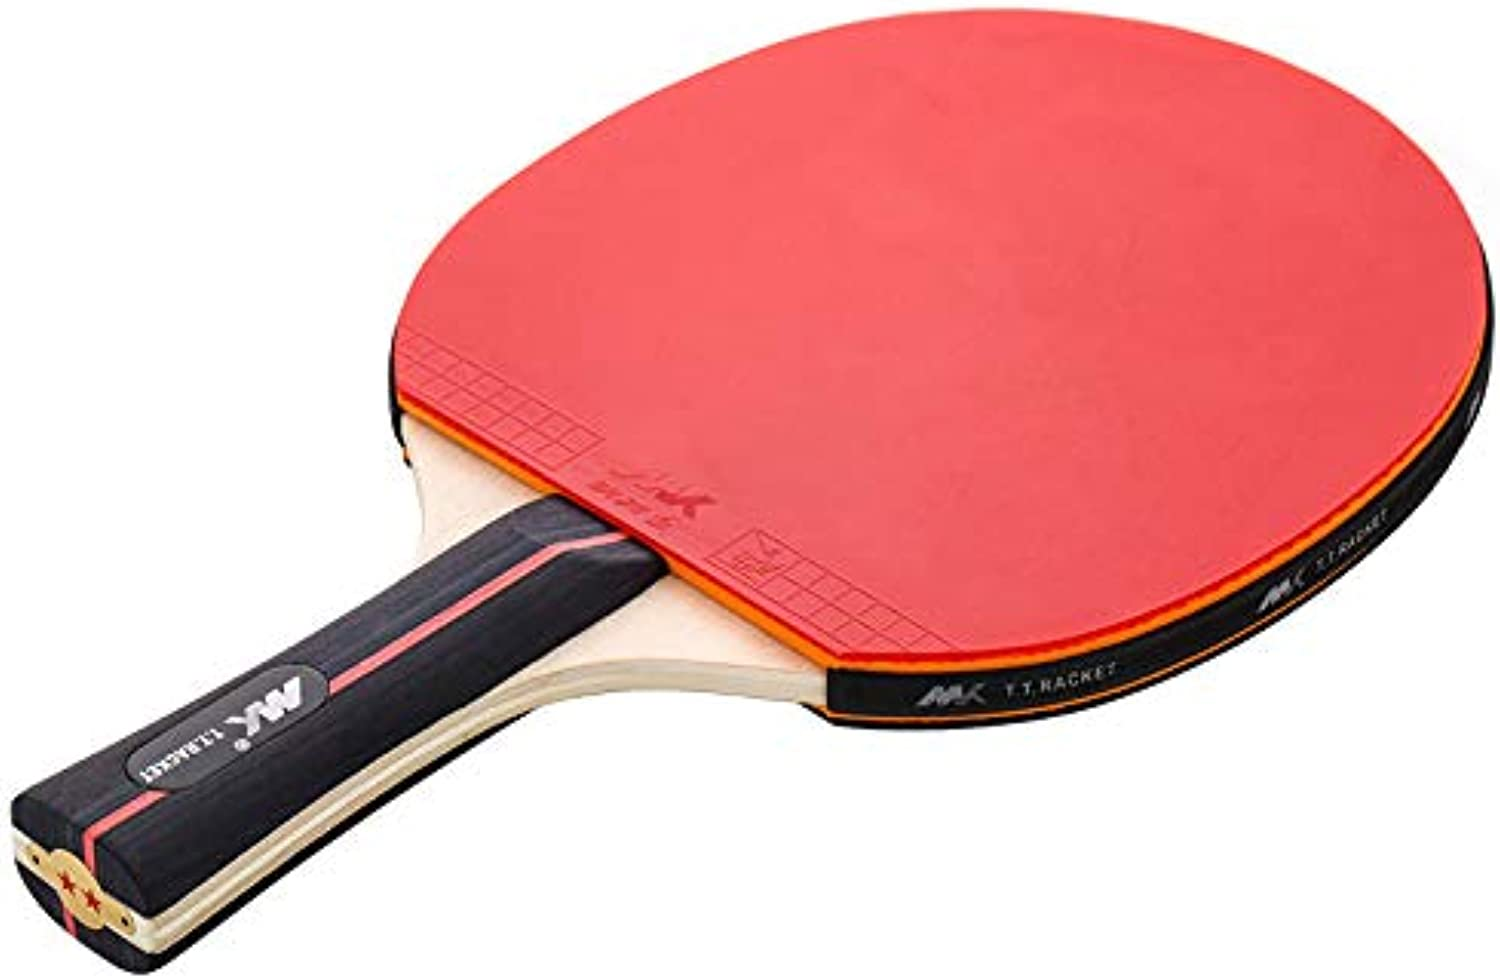 Portable Table Tennis Racket, 5-Layer Beech Wood Quality Rubber Slip Handle, Entertainment Training Table Tennis Racket, Best Equipment for Beginners